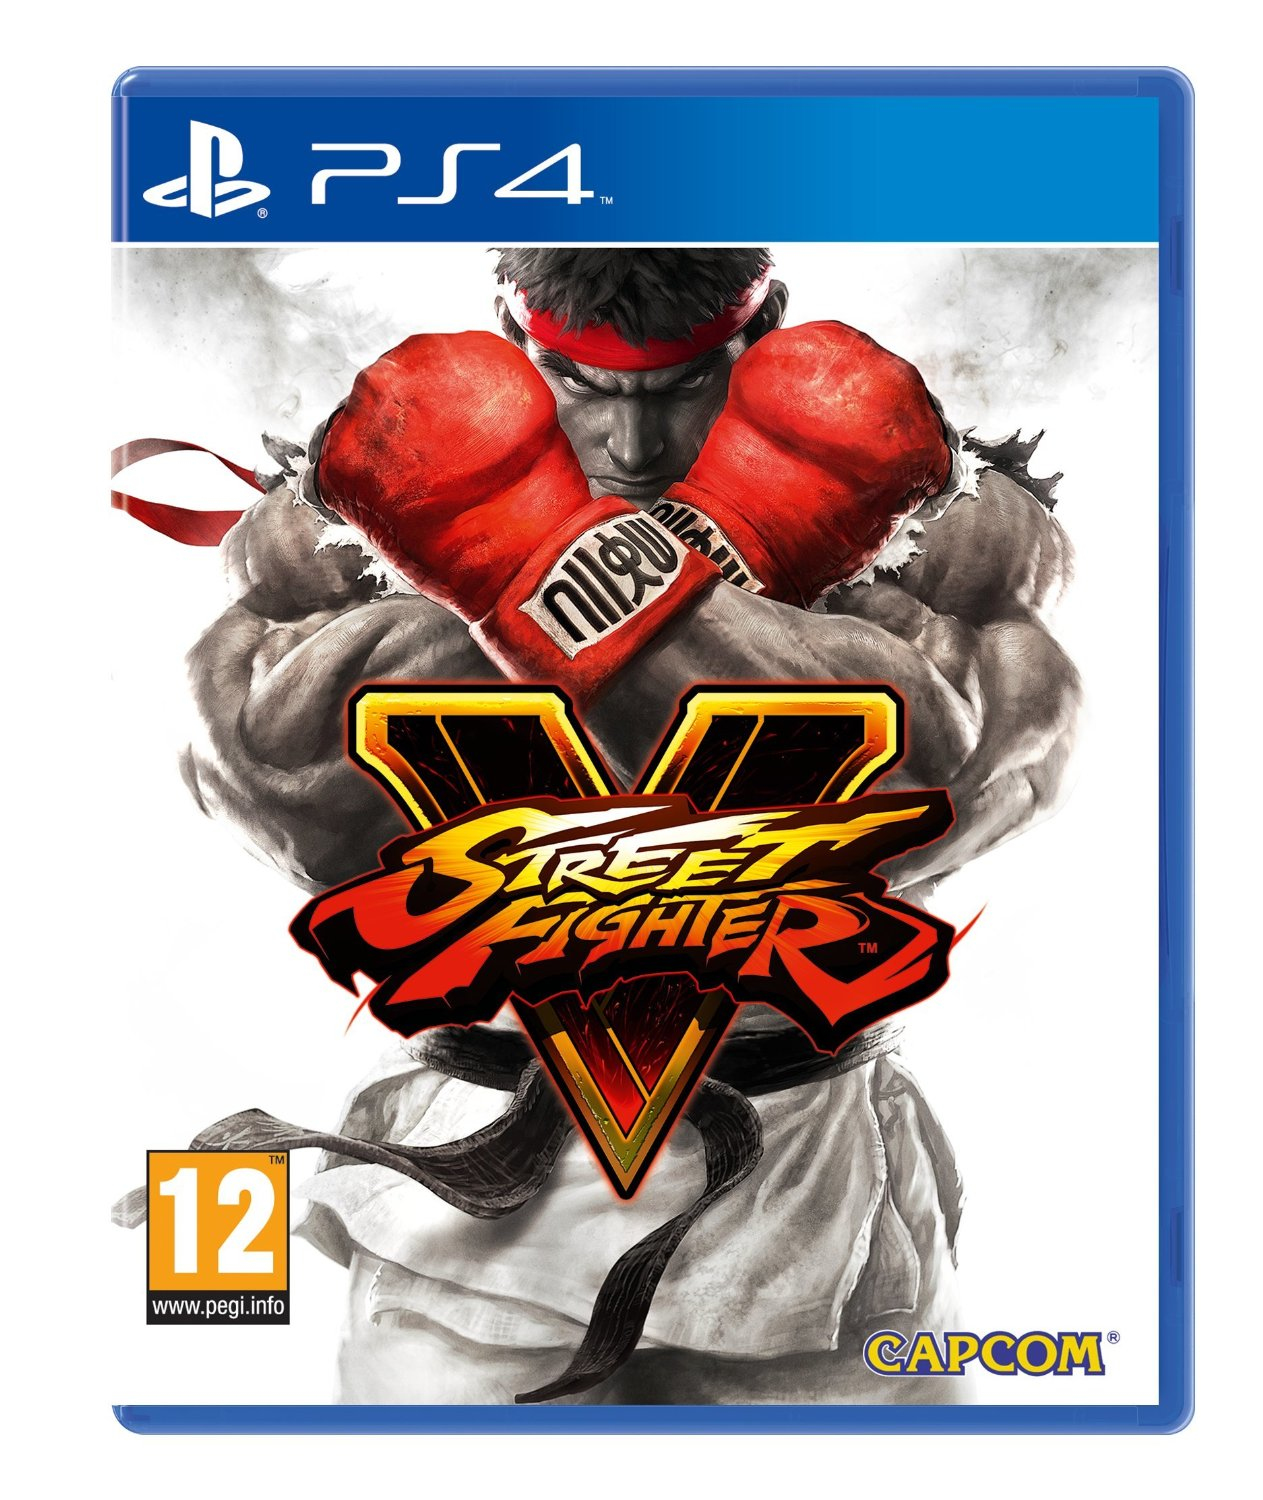 Halifax Street Fighter V - Sp4s07